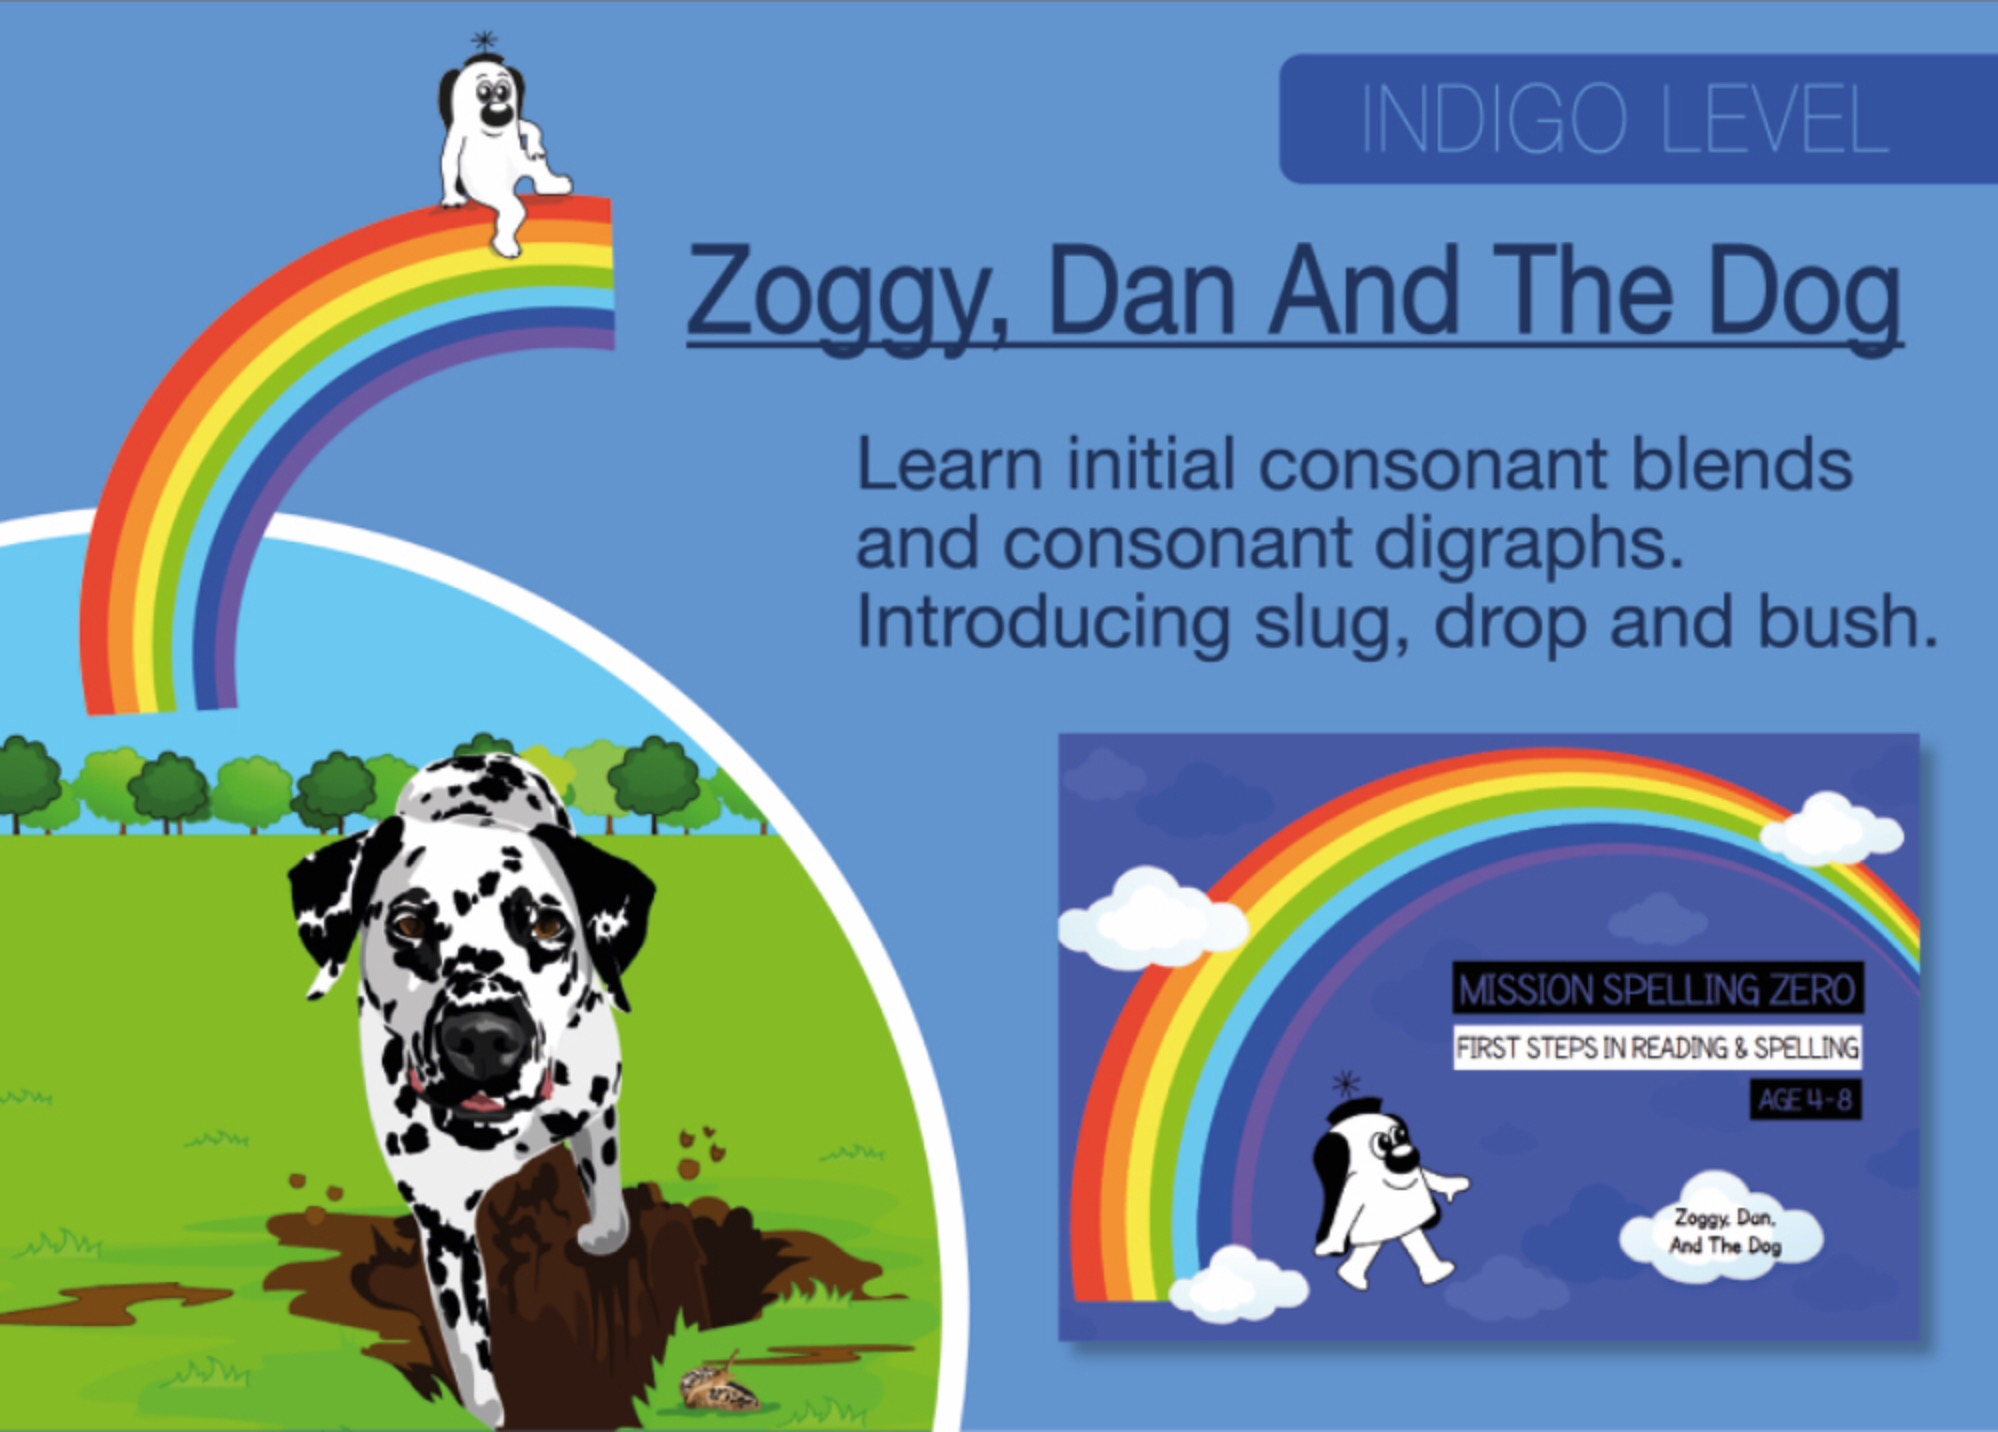 Initial Consonant Blends & Consonant Digraphs: Zoggy, Dan And The Dog (Print Edition)